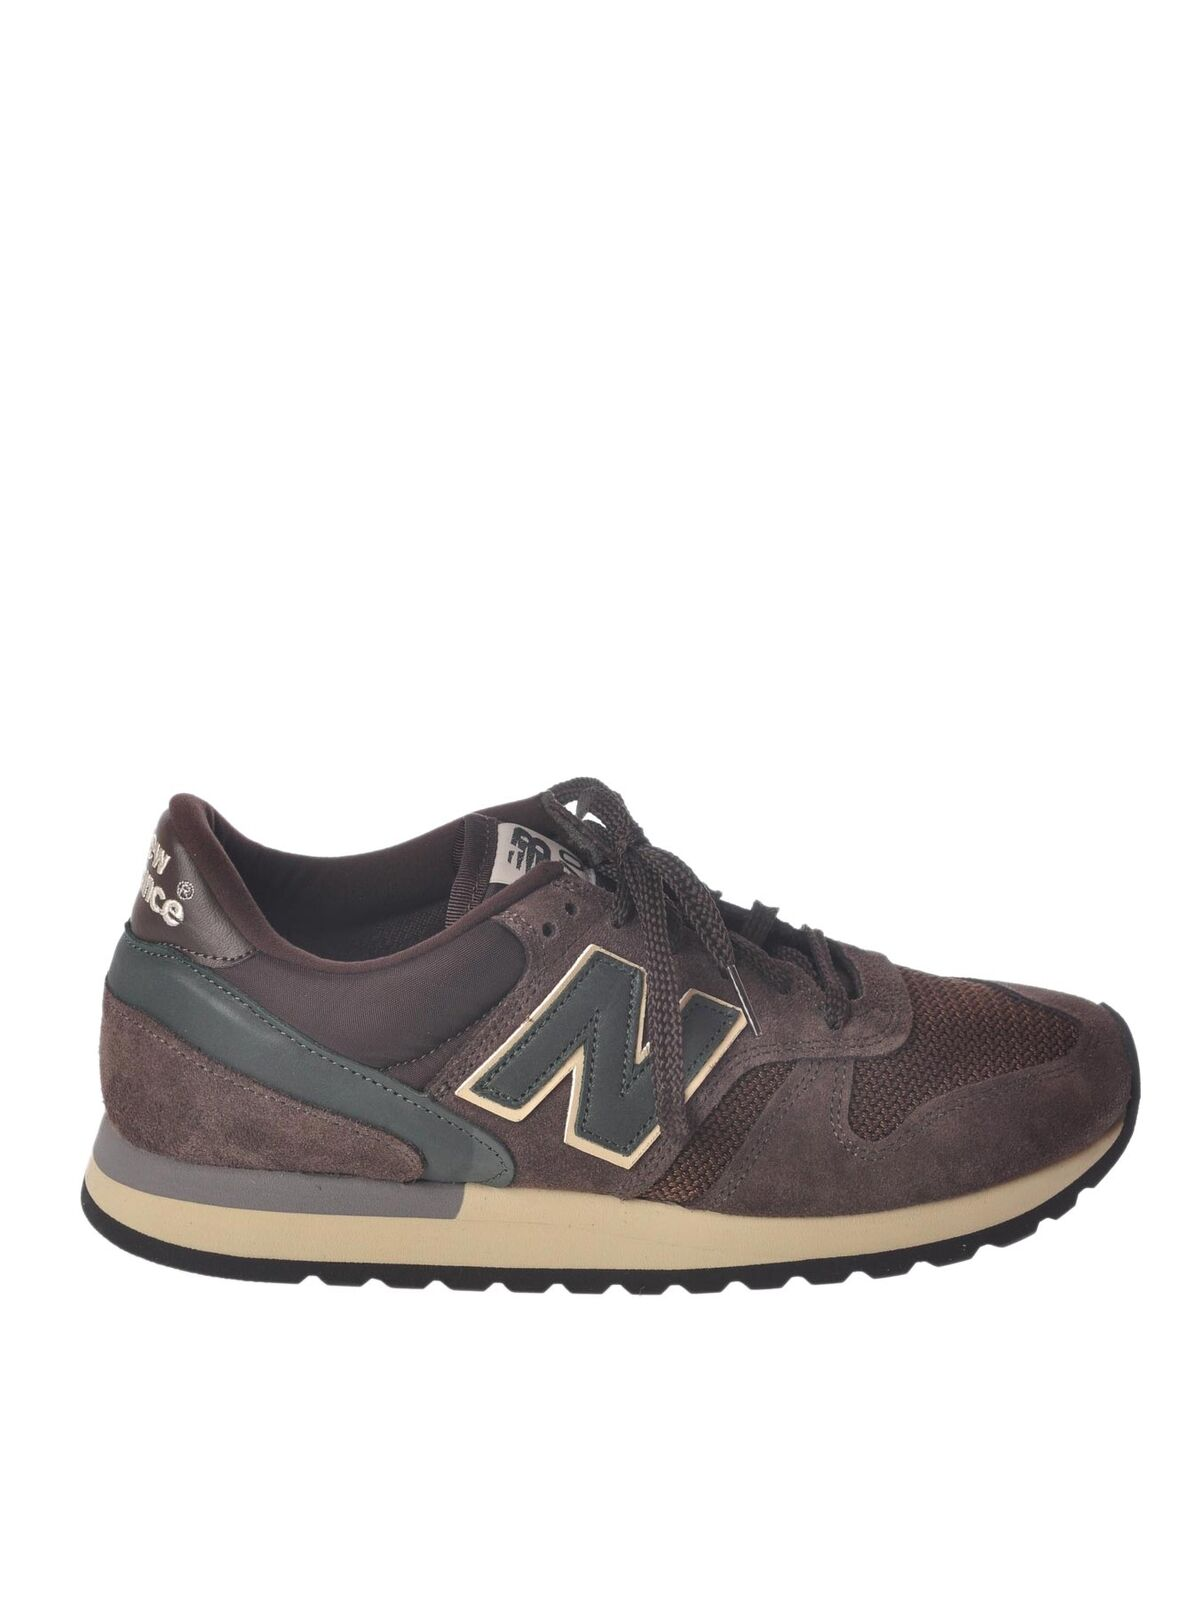 New Balance - shoes-Lace Up - Man - Brown - 4368310C193115